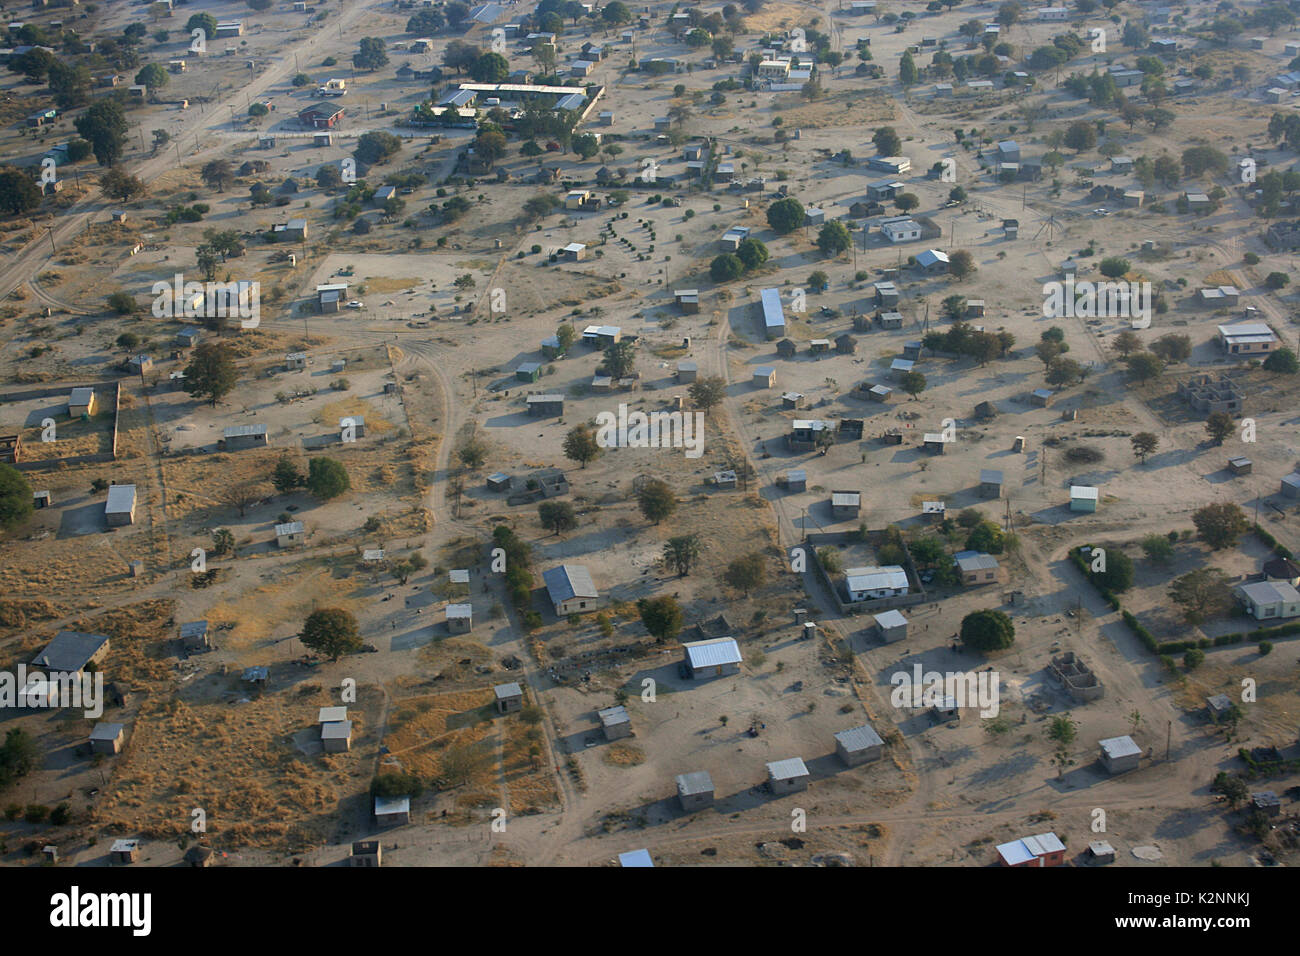 Aerial view of tin shacks in the city of Maun, on the edge of the Okavango Delta in Botswana - Stock Image